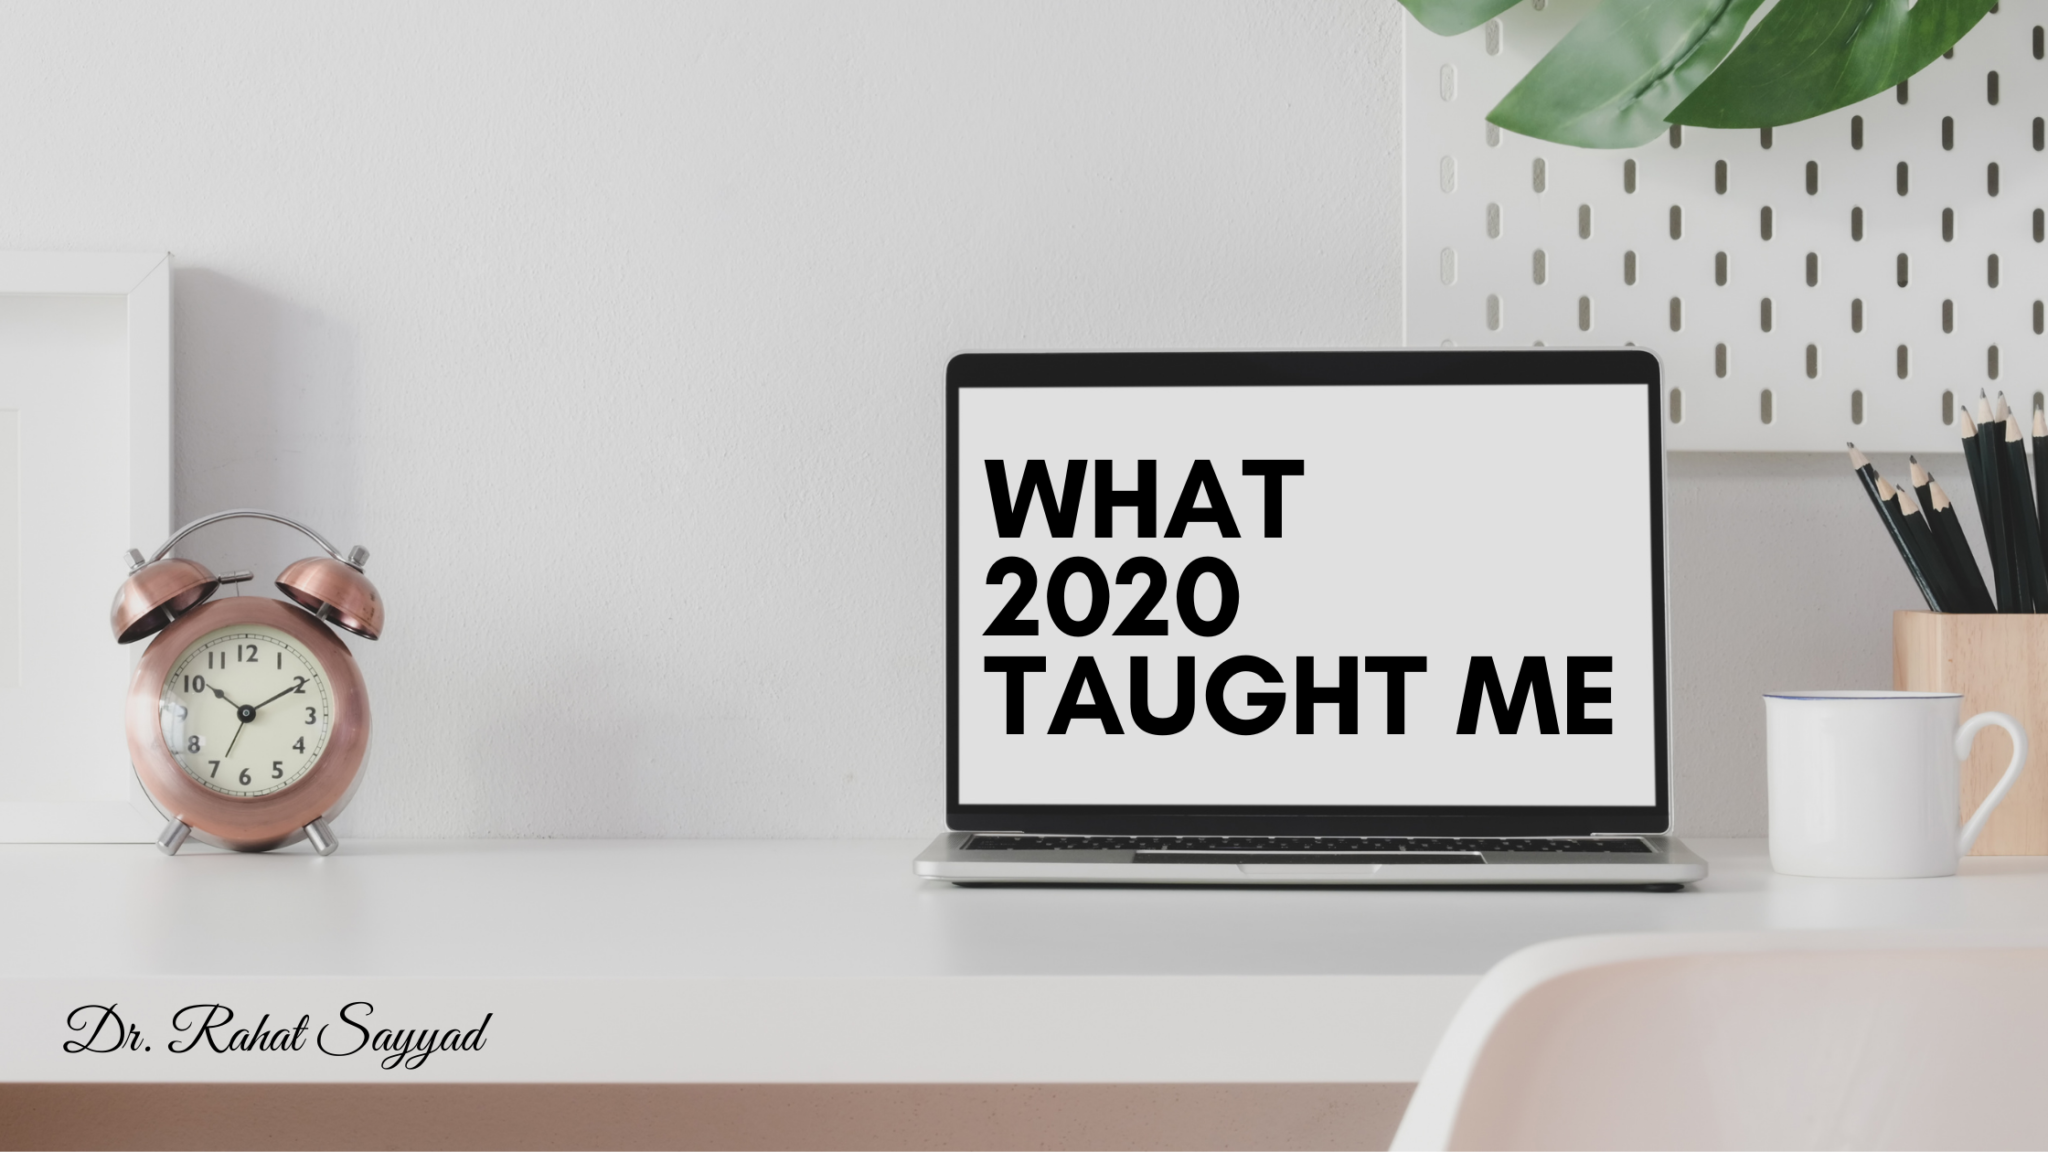 3 things 2020 taught and I happily learnt.